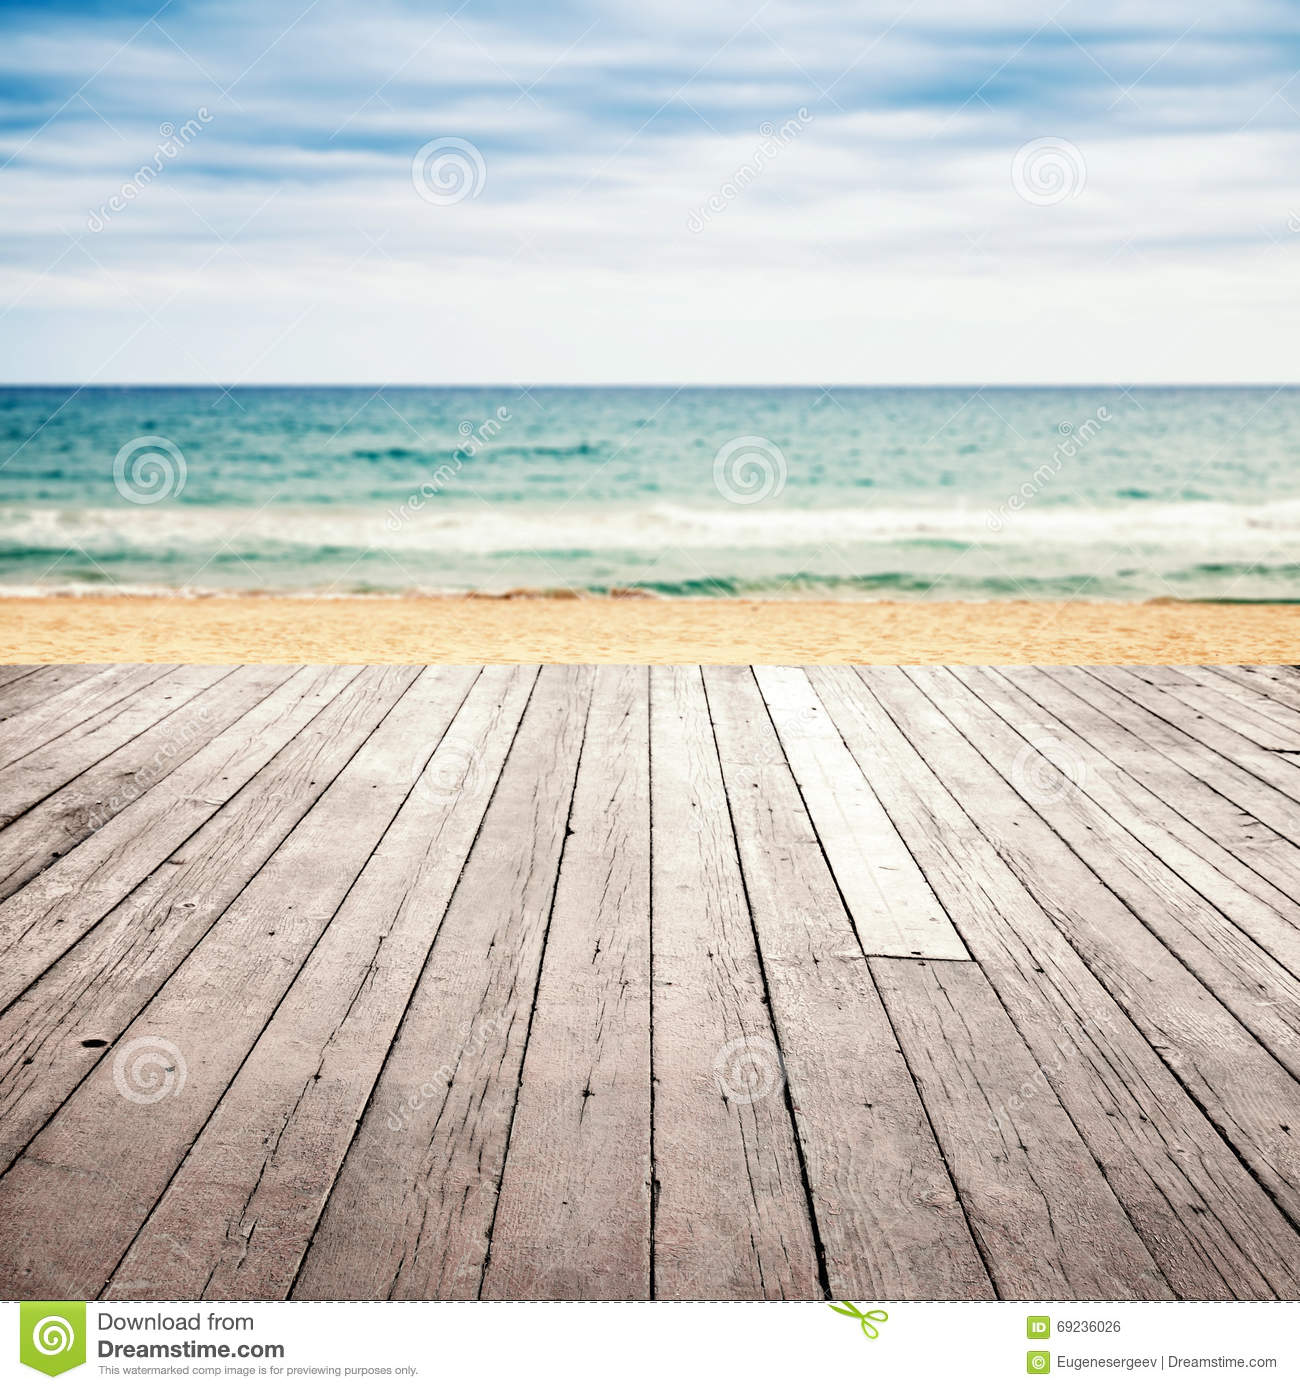 Wood Floor On Beach Sea And Blue Sky For Background Stock: Old Empty Wooden Pier Perspective On Sandy Beach Stock